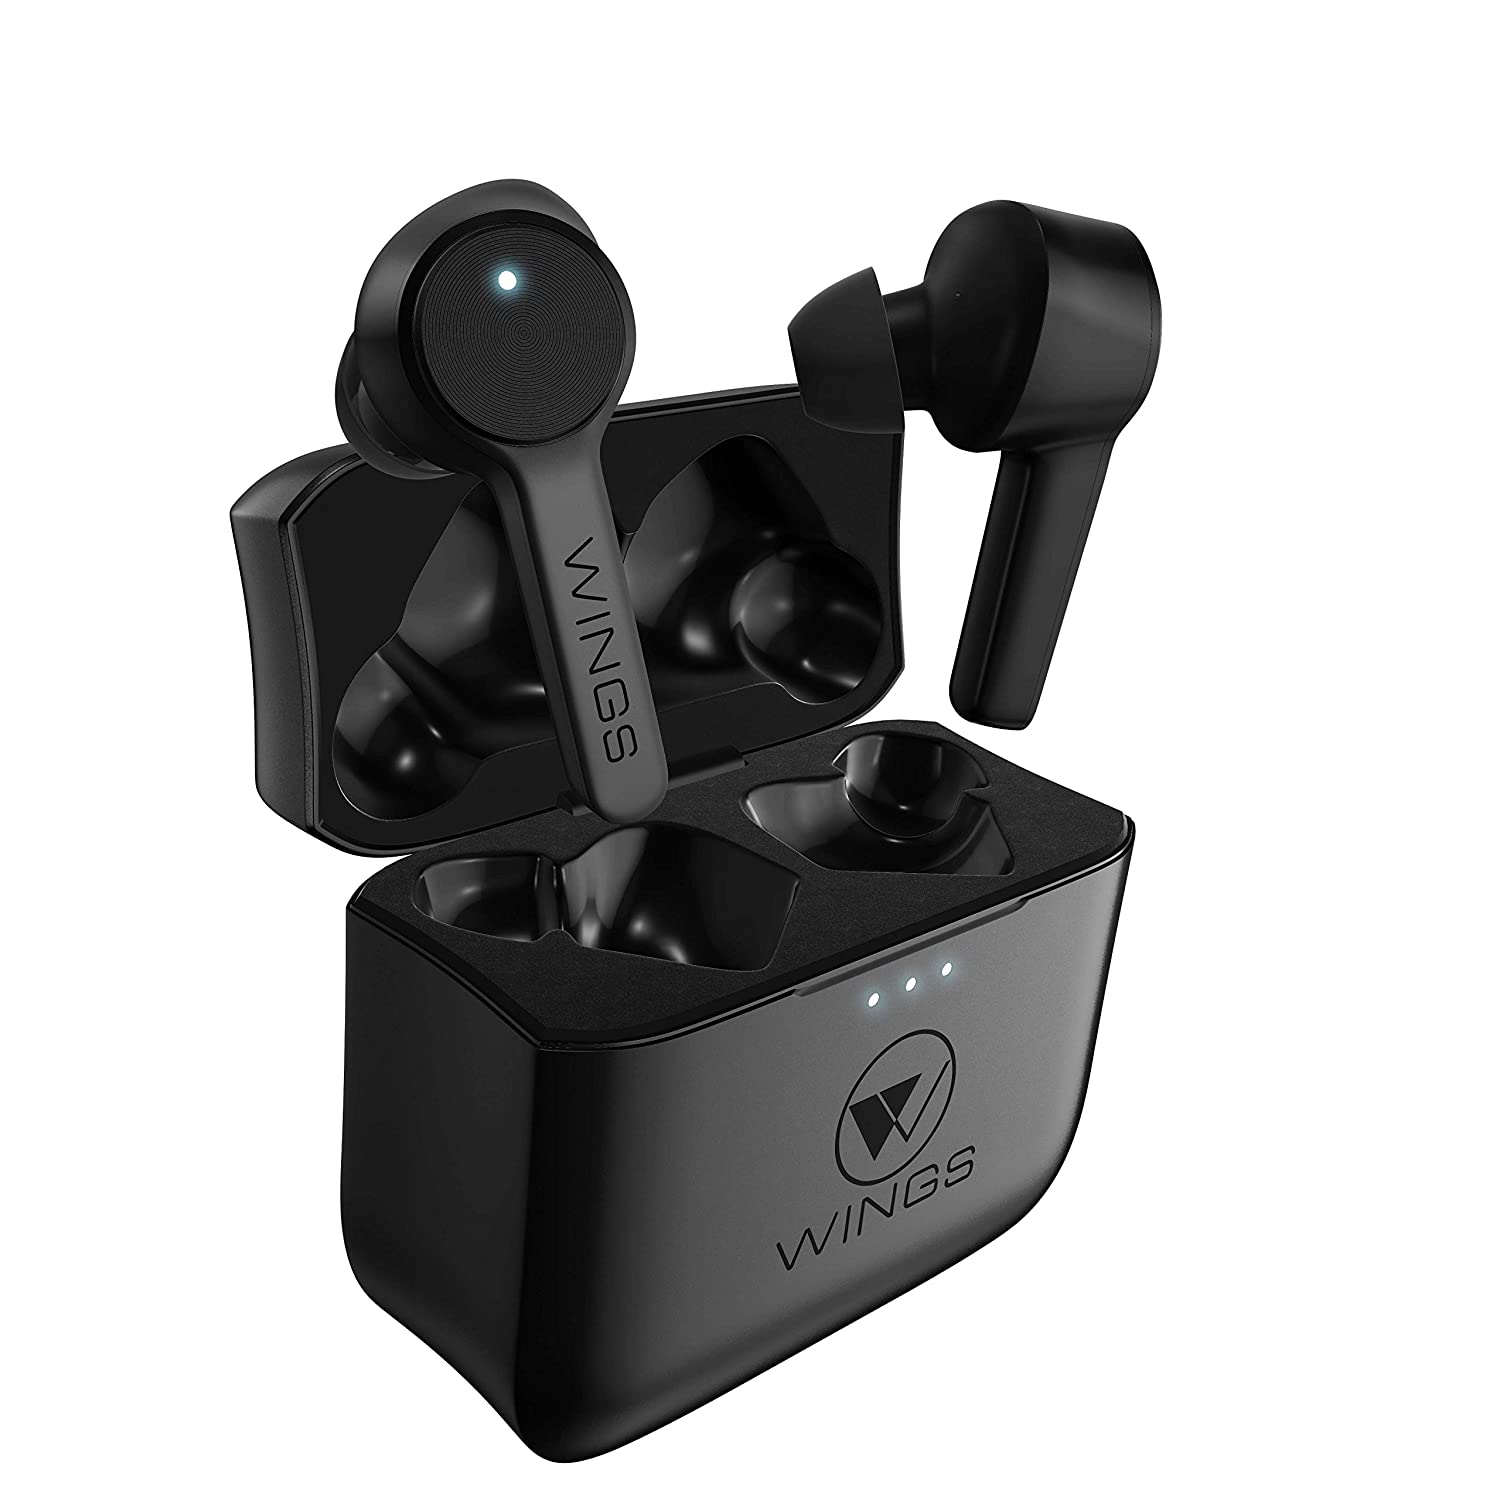 Wings Techno Bluetooth 5.0 True Wireless Earbuds, Dual Mics, 24 Hour Playtime (Black)